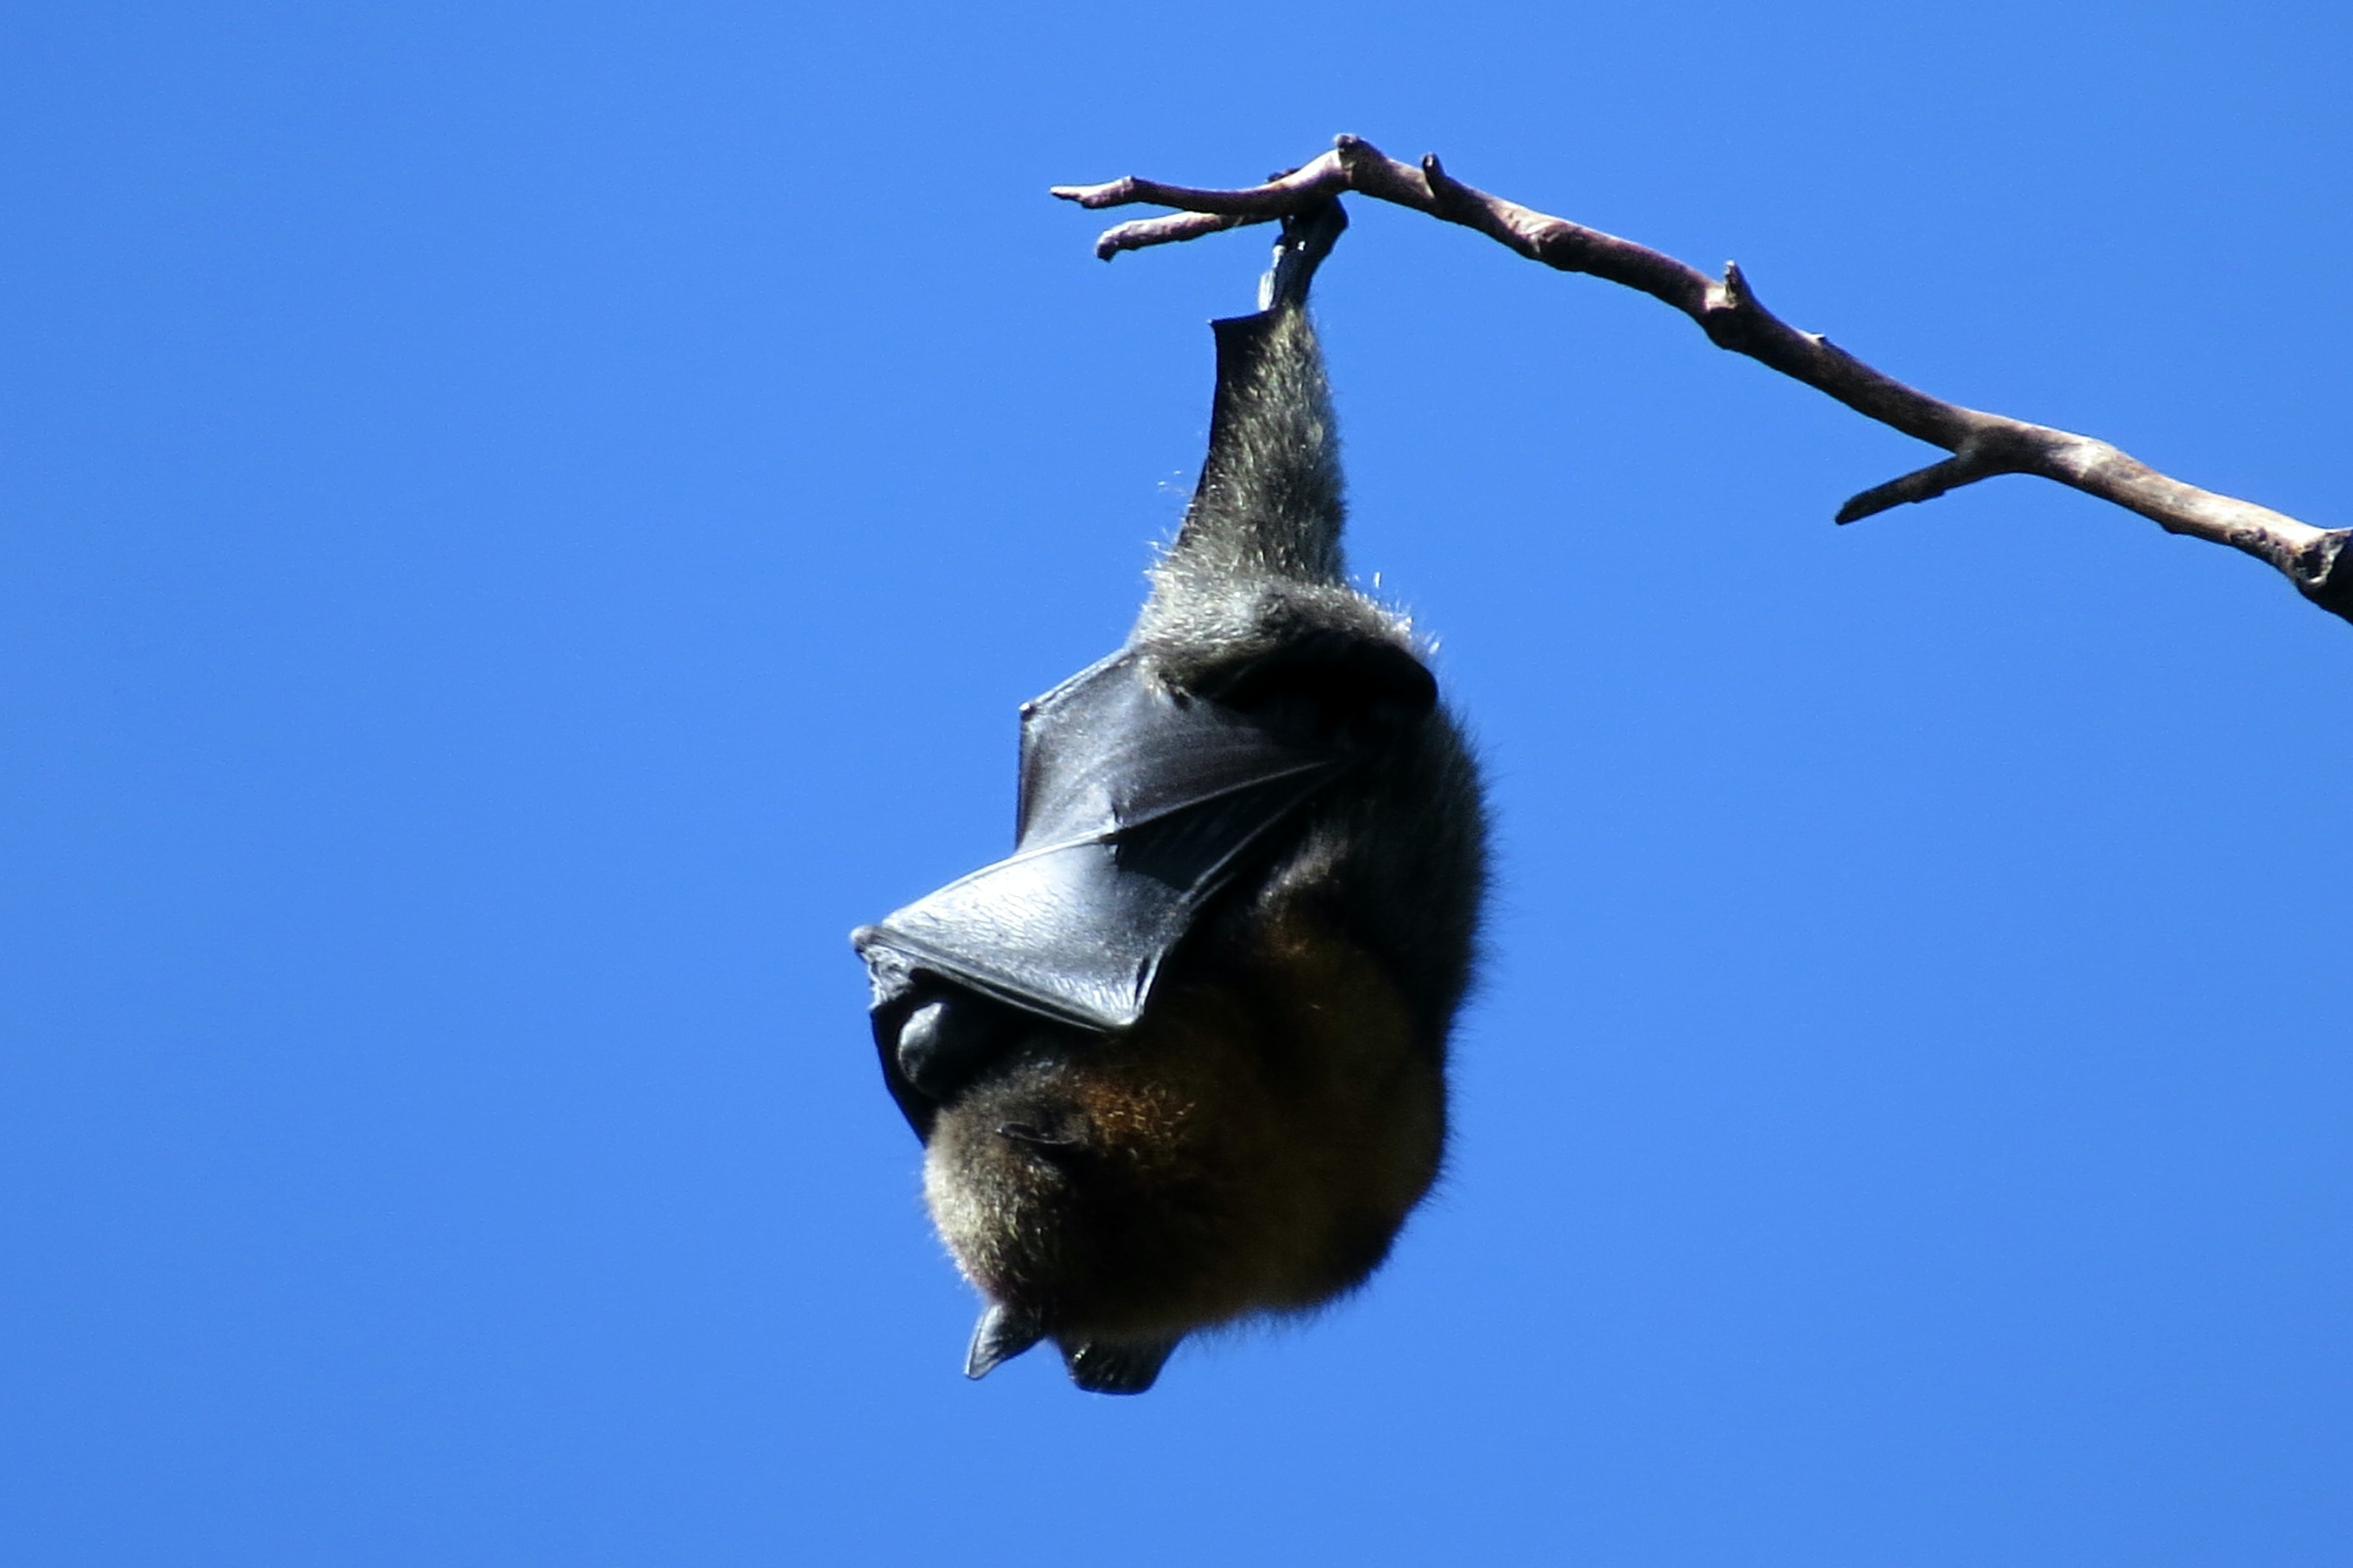 bat hanging on wood branch